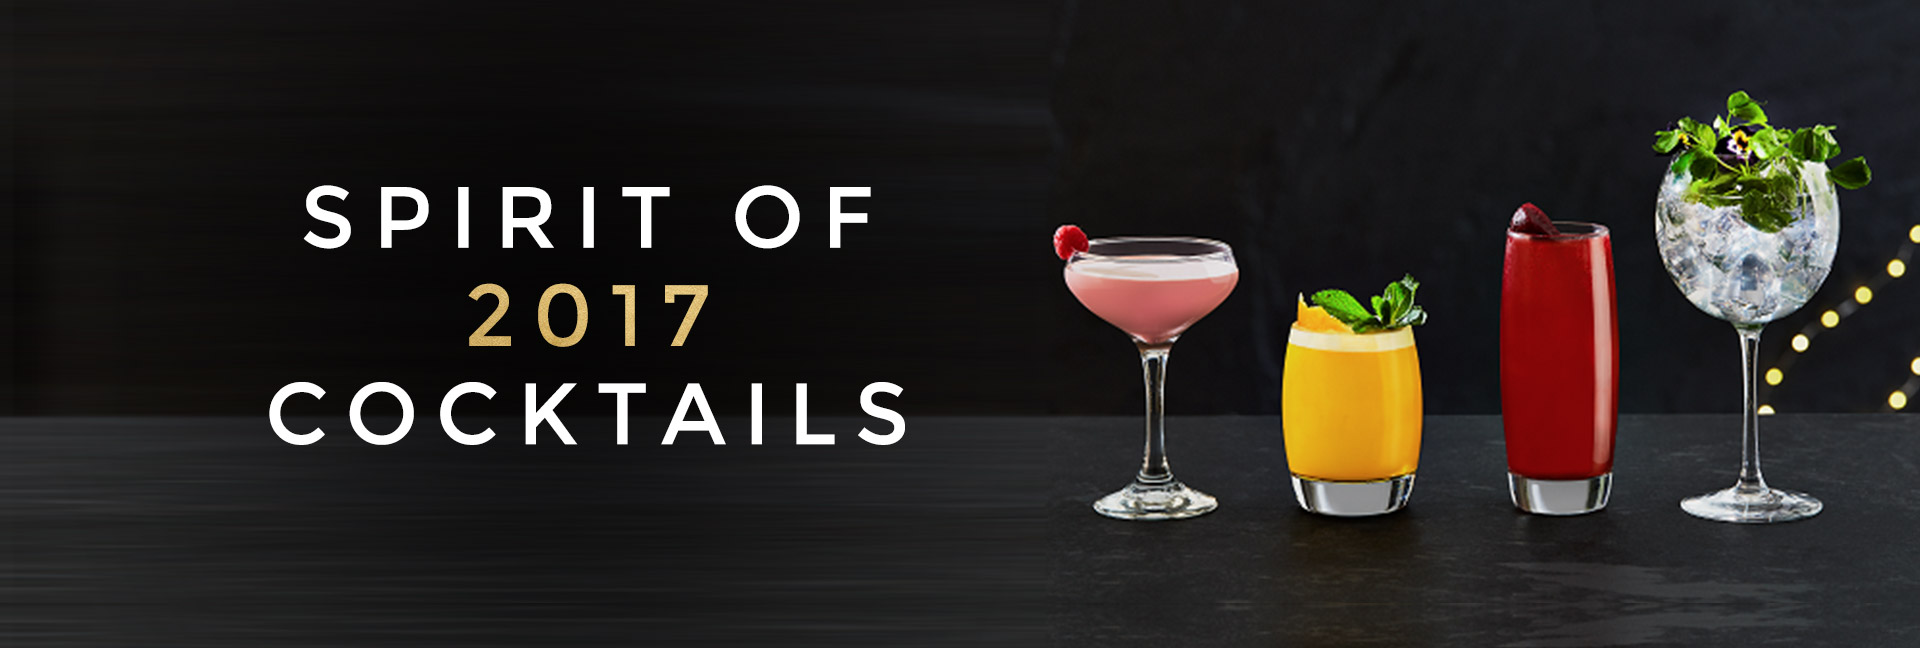 Spirit of 2017 cocktails at All Bar One Byward Street